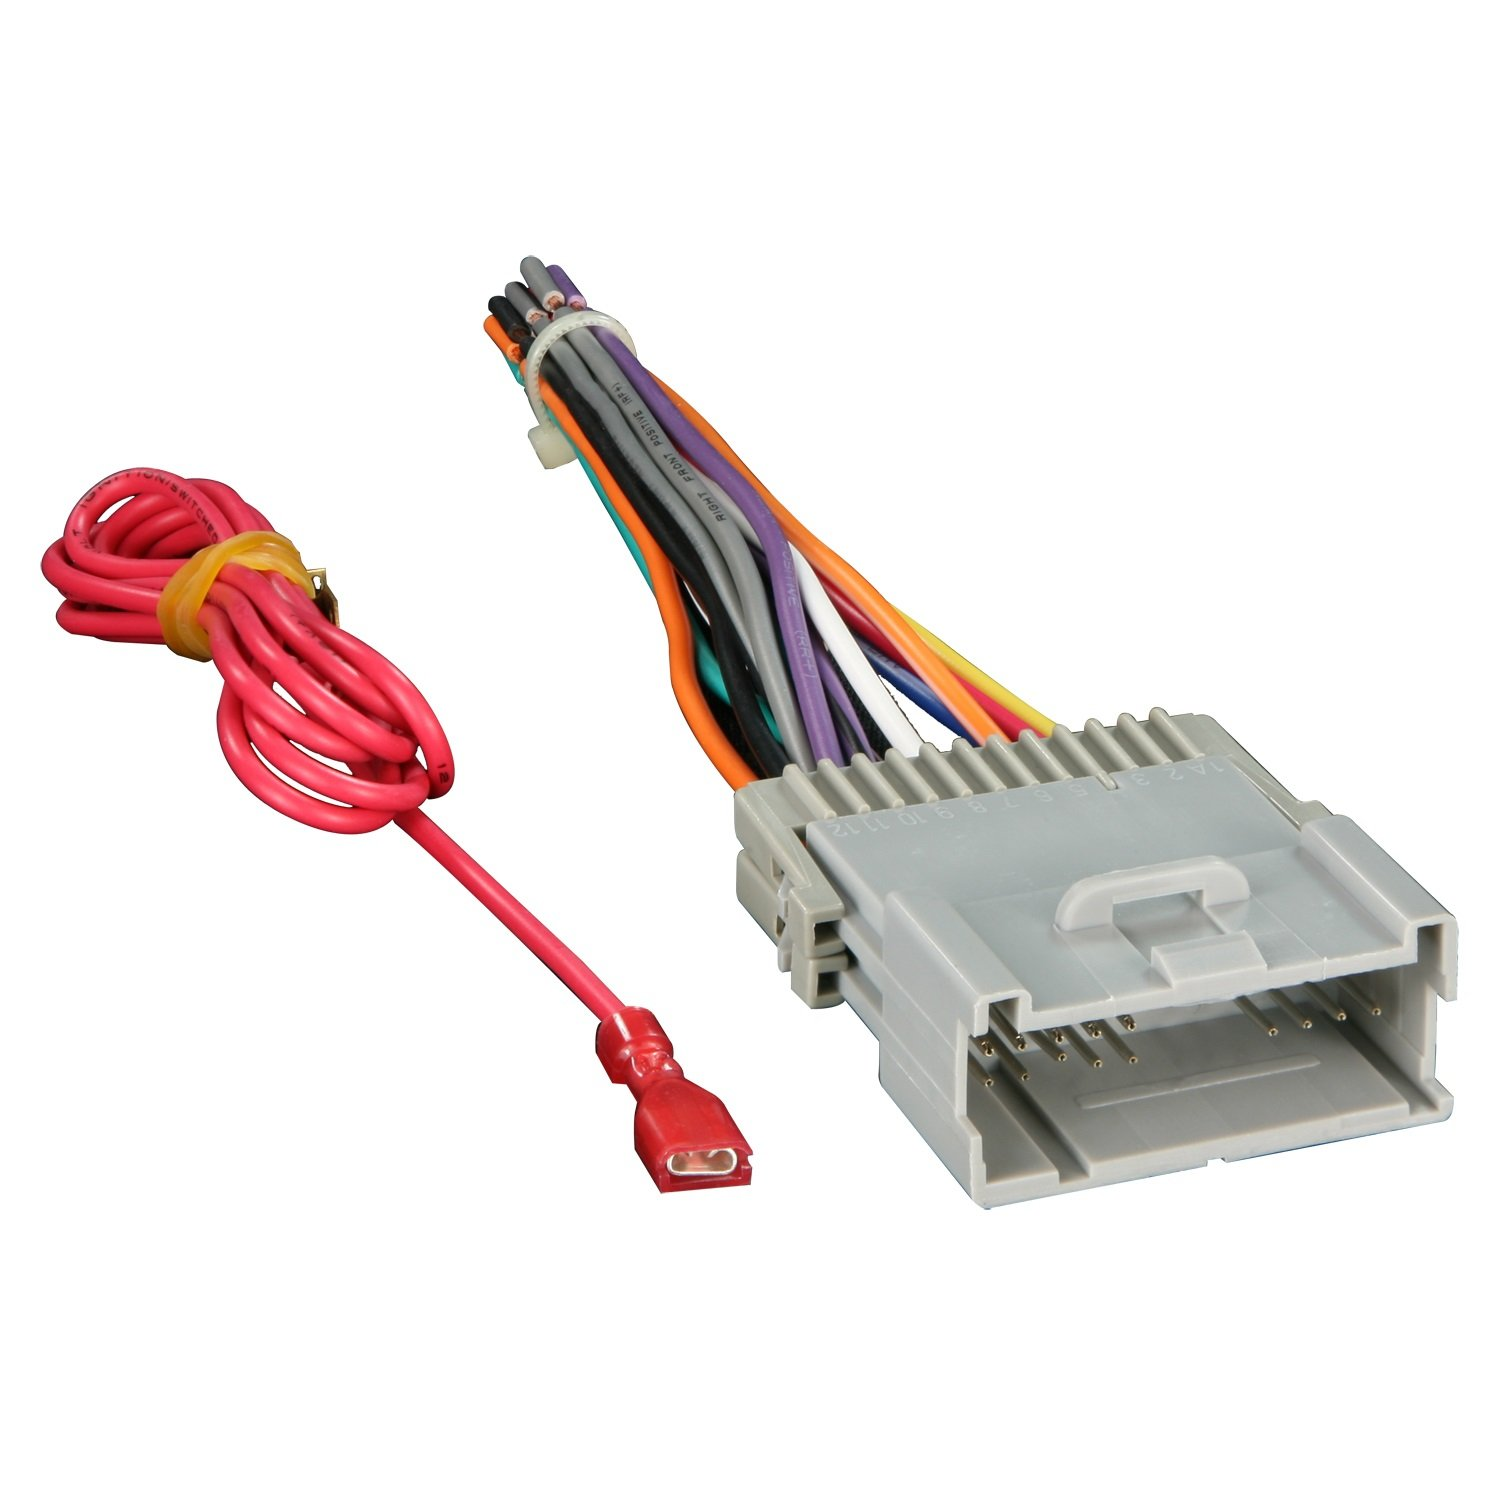 61eewxp9orL._SL1500_ amazon com metra 70 2003 radio wiring harness for gm 98 08 how to get wire out harness at gsmx.co